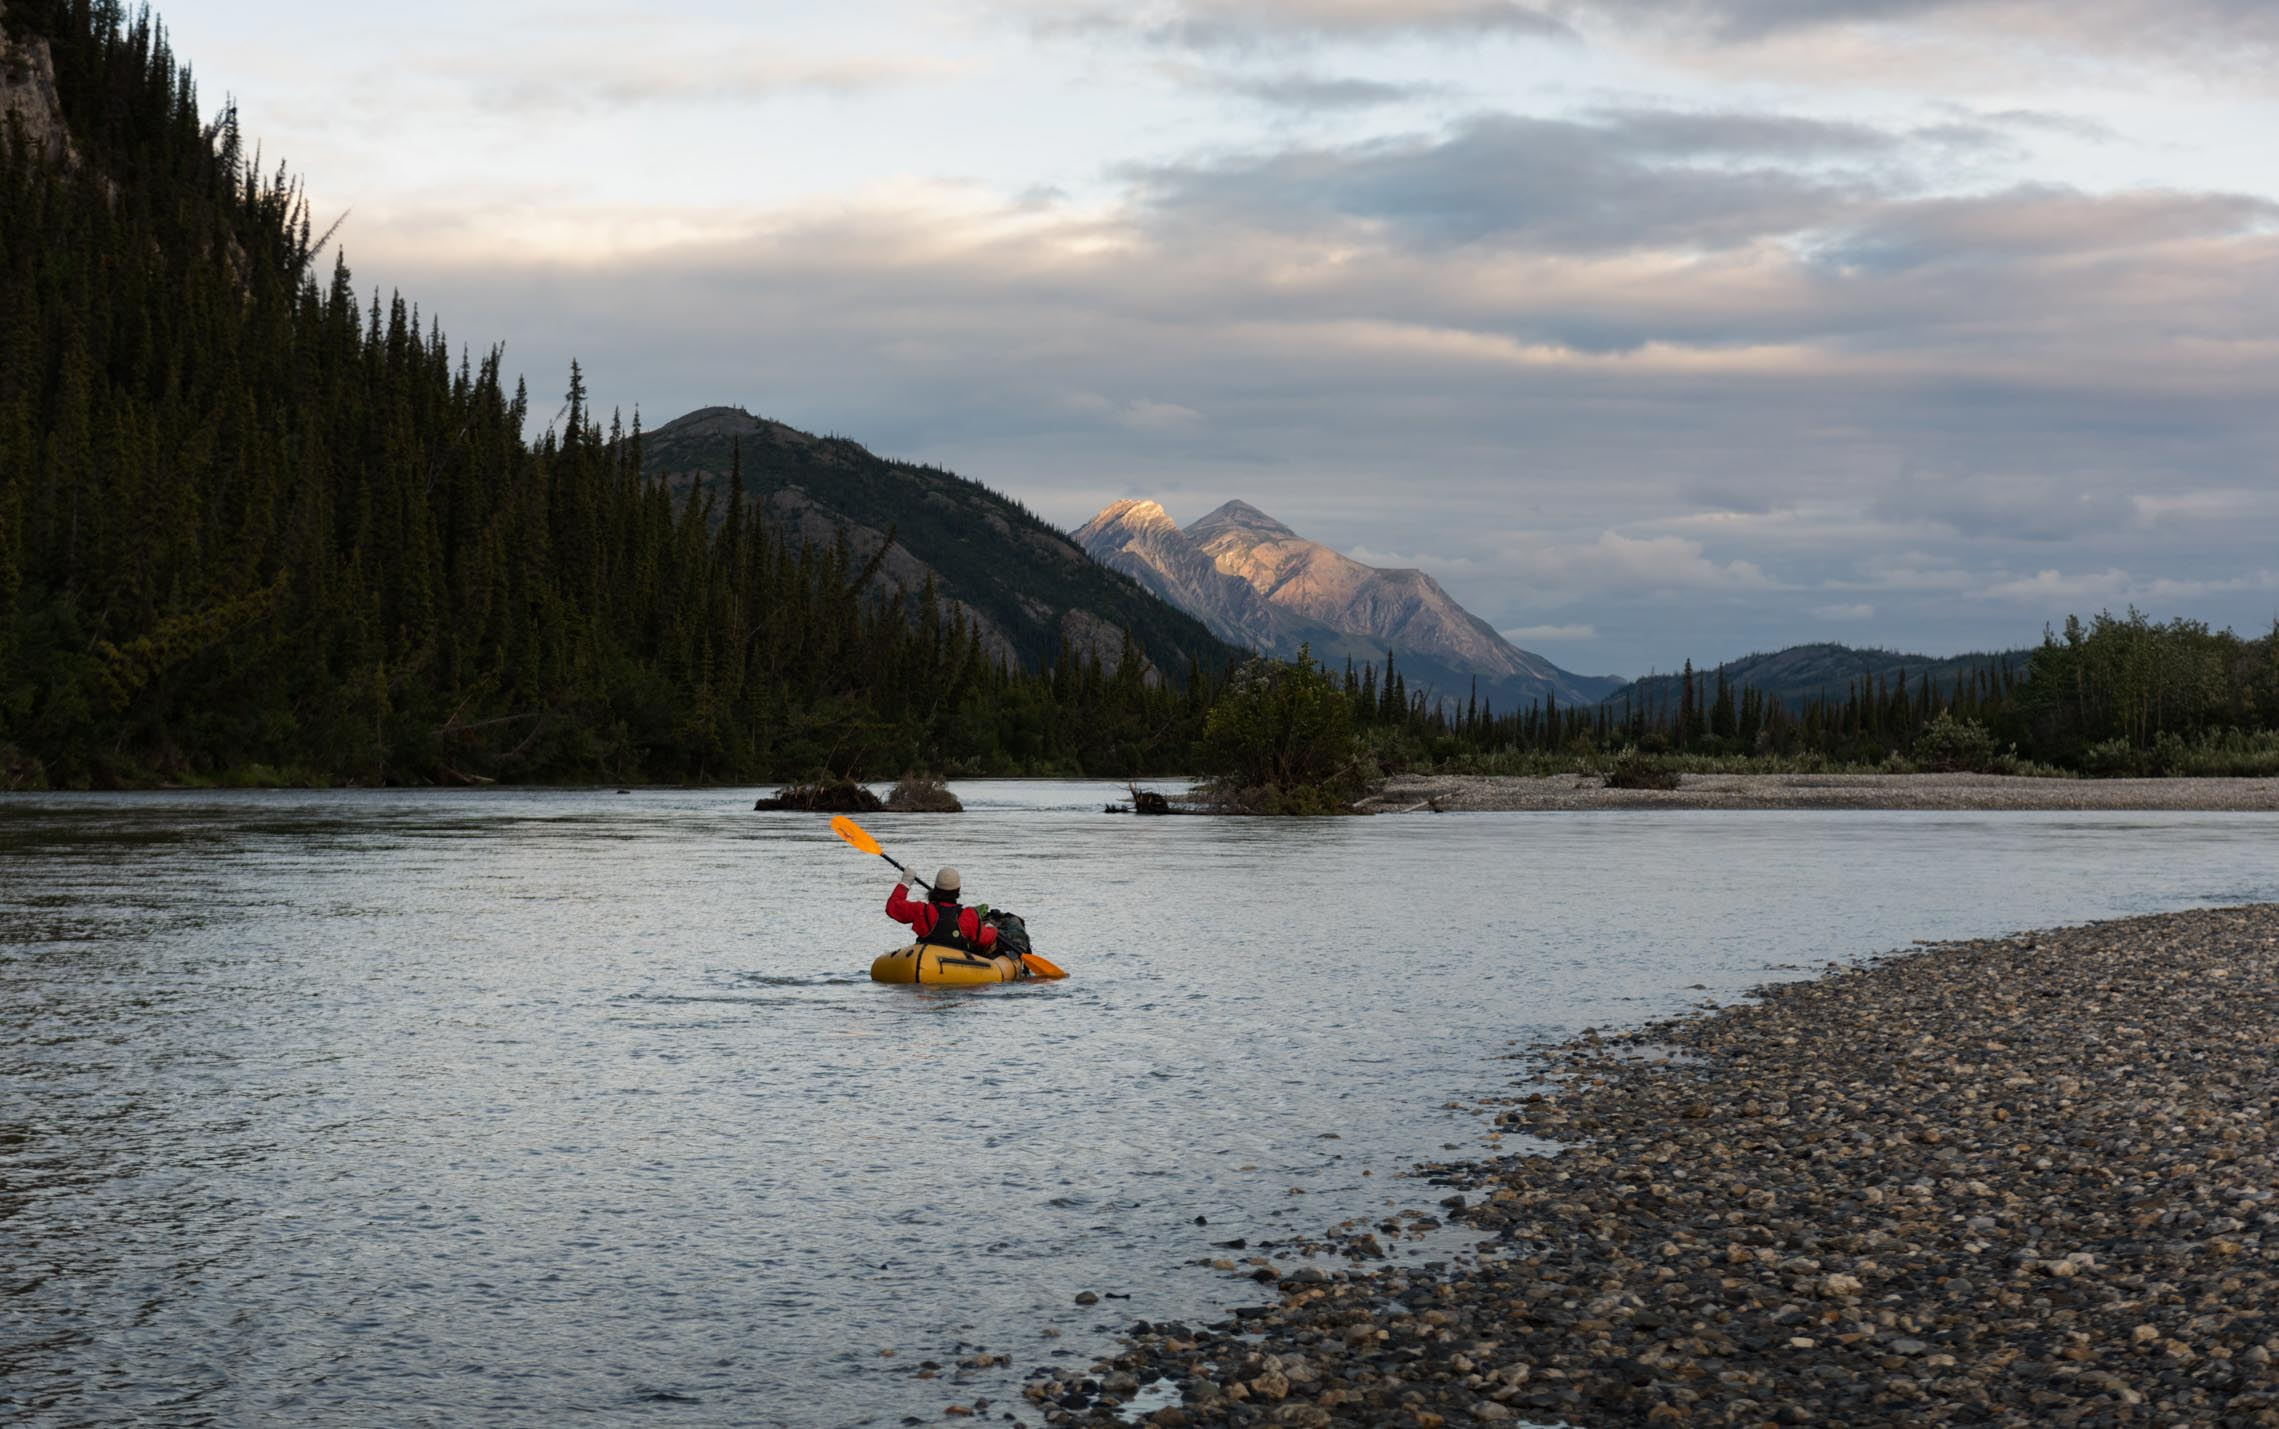 Packrafting in a lake at dawn with a snow capped mountain in the background